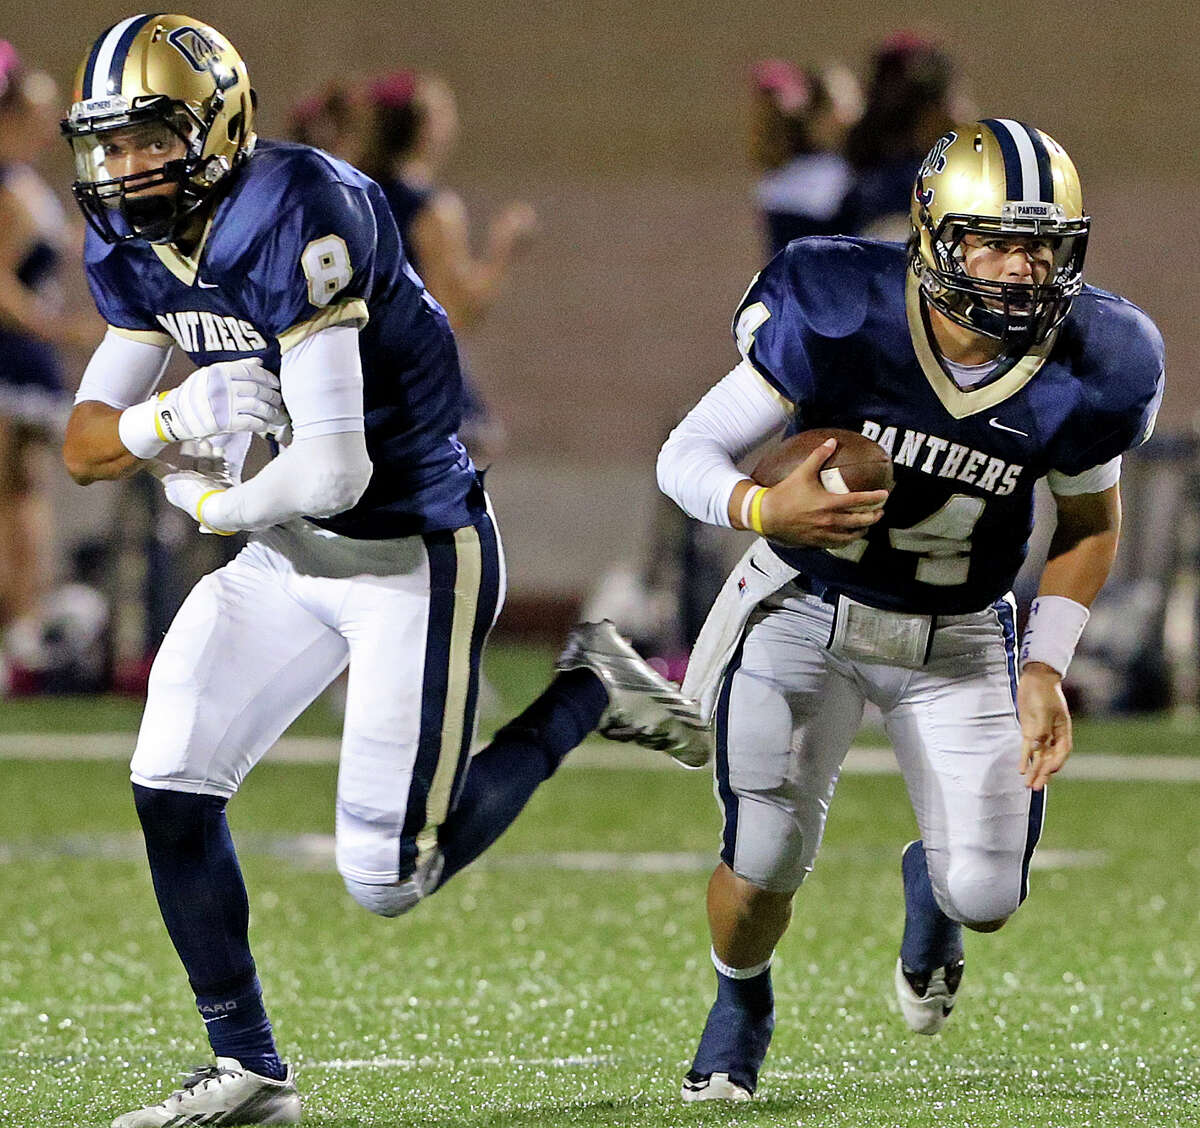 O'Connor quarterback Zach Galindo takes off with the ball after faking to Alonso Roscoe as Warren plays O'Connor at Farris Stadium on October 18, 2013.